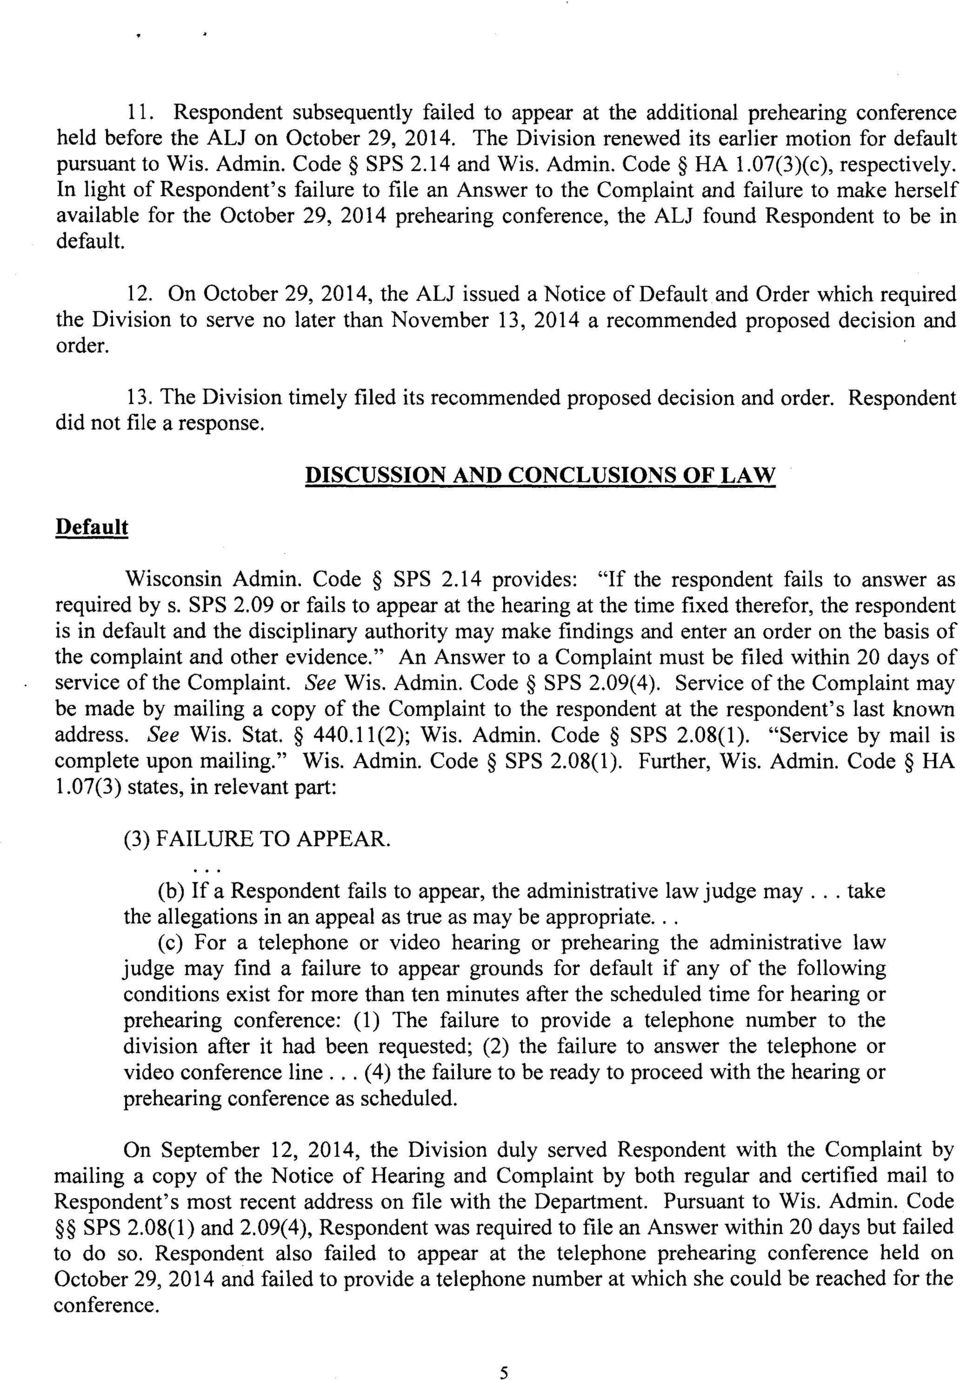 In light of Respondent's failure to file an Answer to the Complaint and failure to make herself available for the October 29, 2014 prehearing conference, the ALJ found Respondent to be in default. 12.